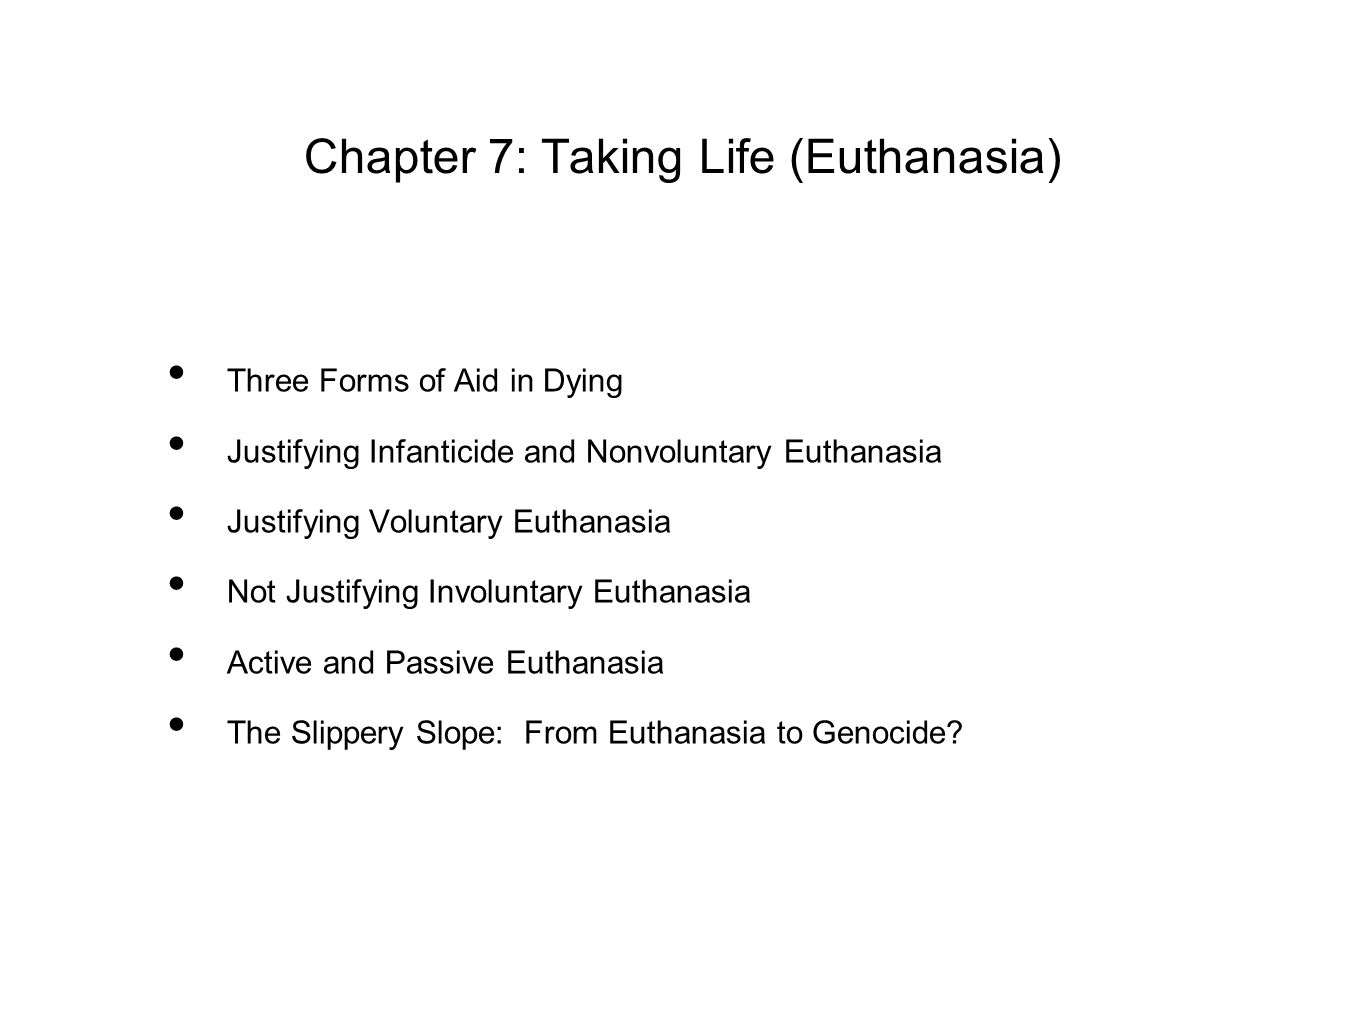 Chapter 7: Taking Life (Euthanasia) Three Forms of Aid in Dying Justifying Infanticide and Nonvoluntary Euthanasia Justifying Voluntary Euthanasia Not Justifying Involuntary Euthanasia Active and Passive Euthanasia The Slippery Slope: From Euthanasia to Genocide